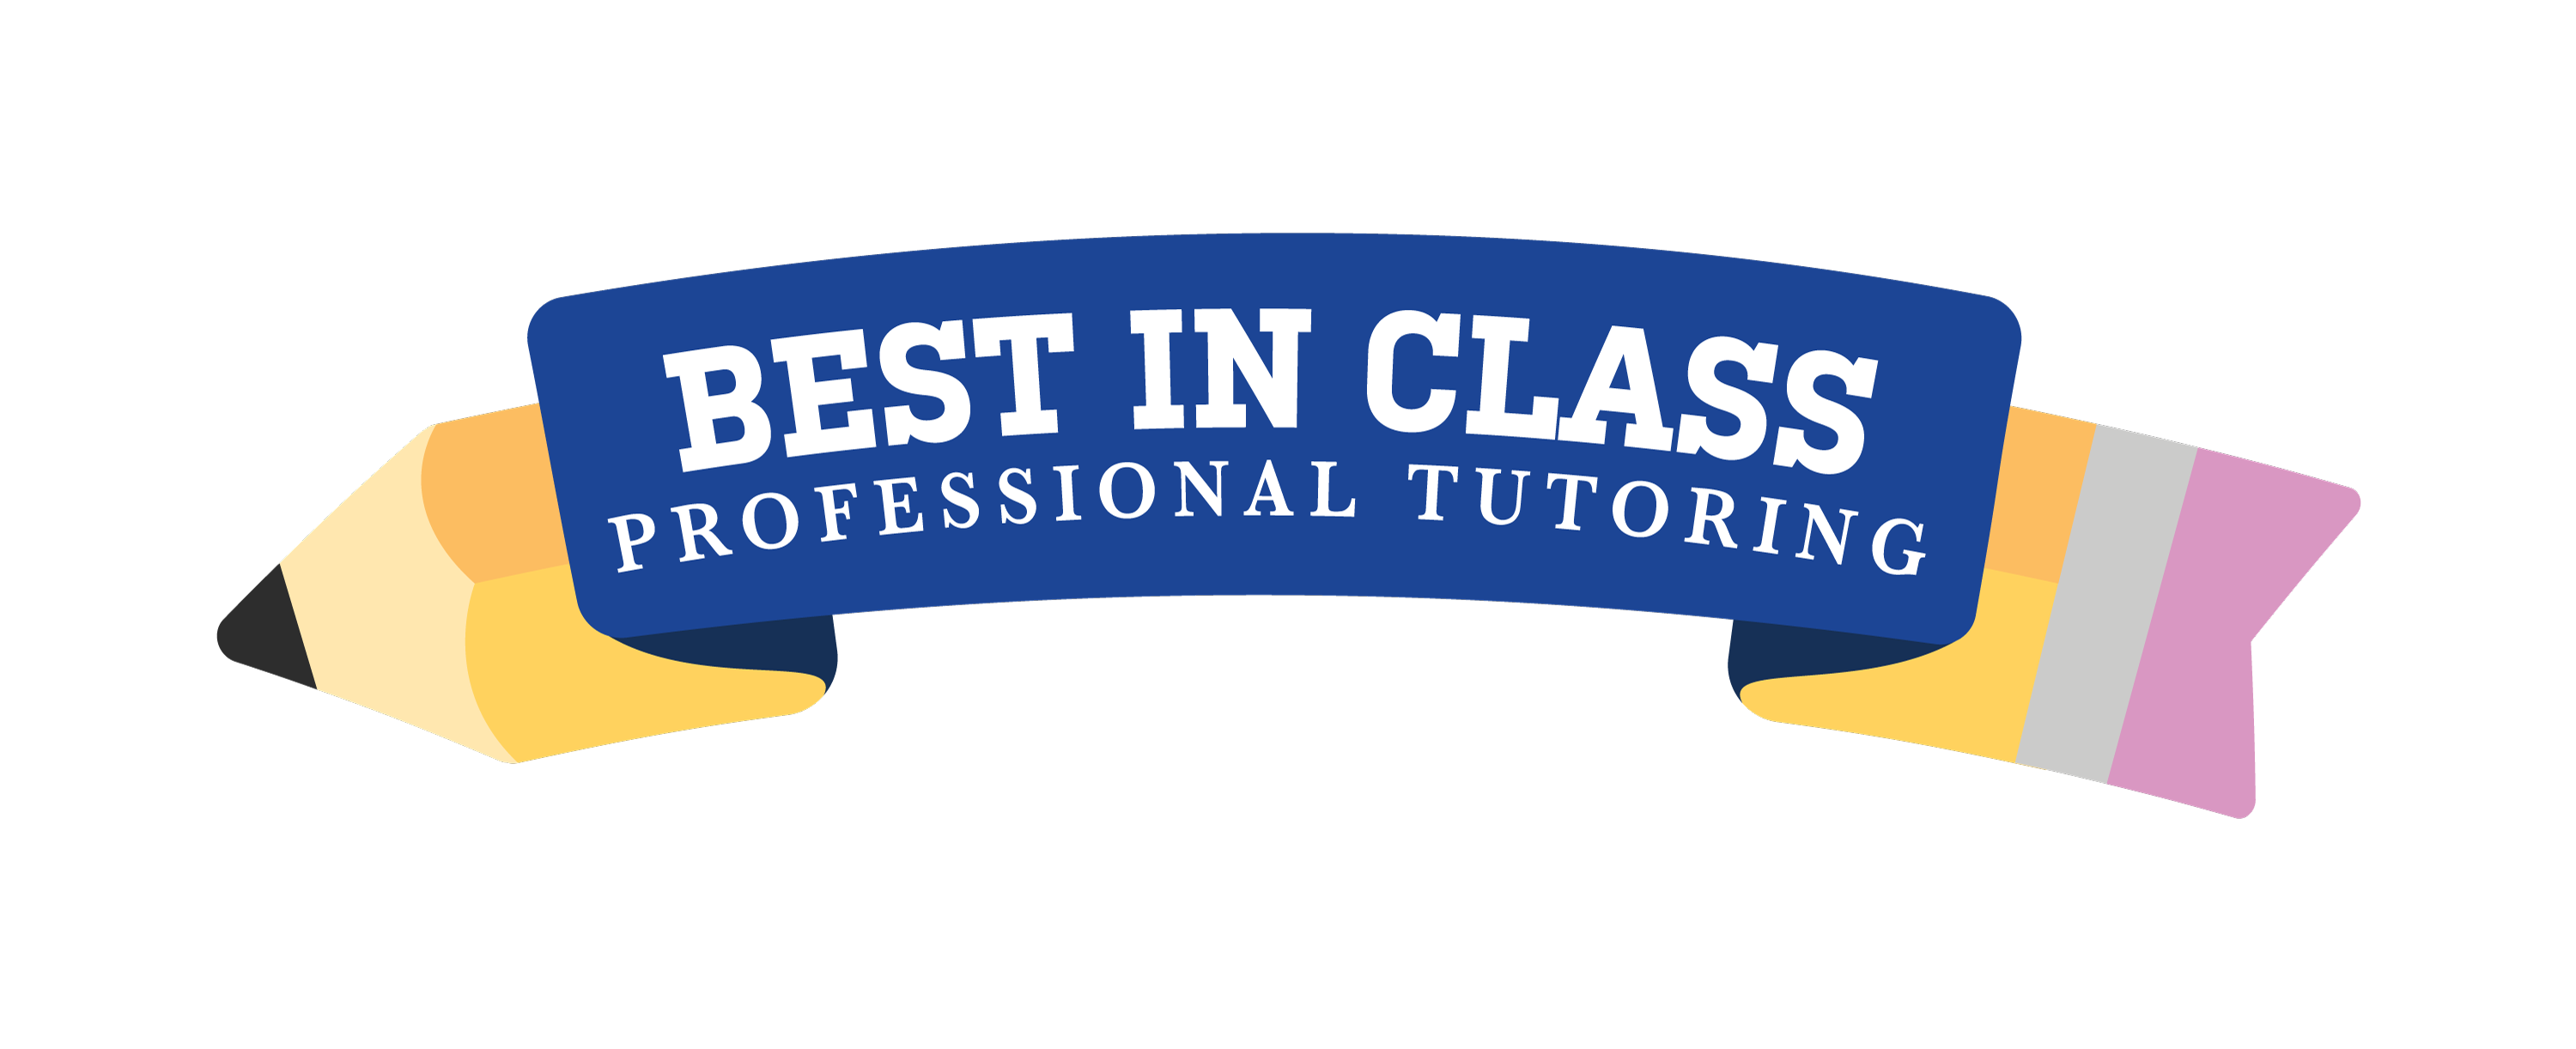 Best in Class Tutoring